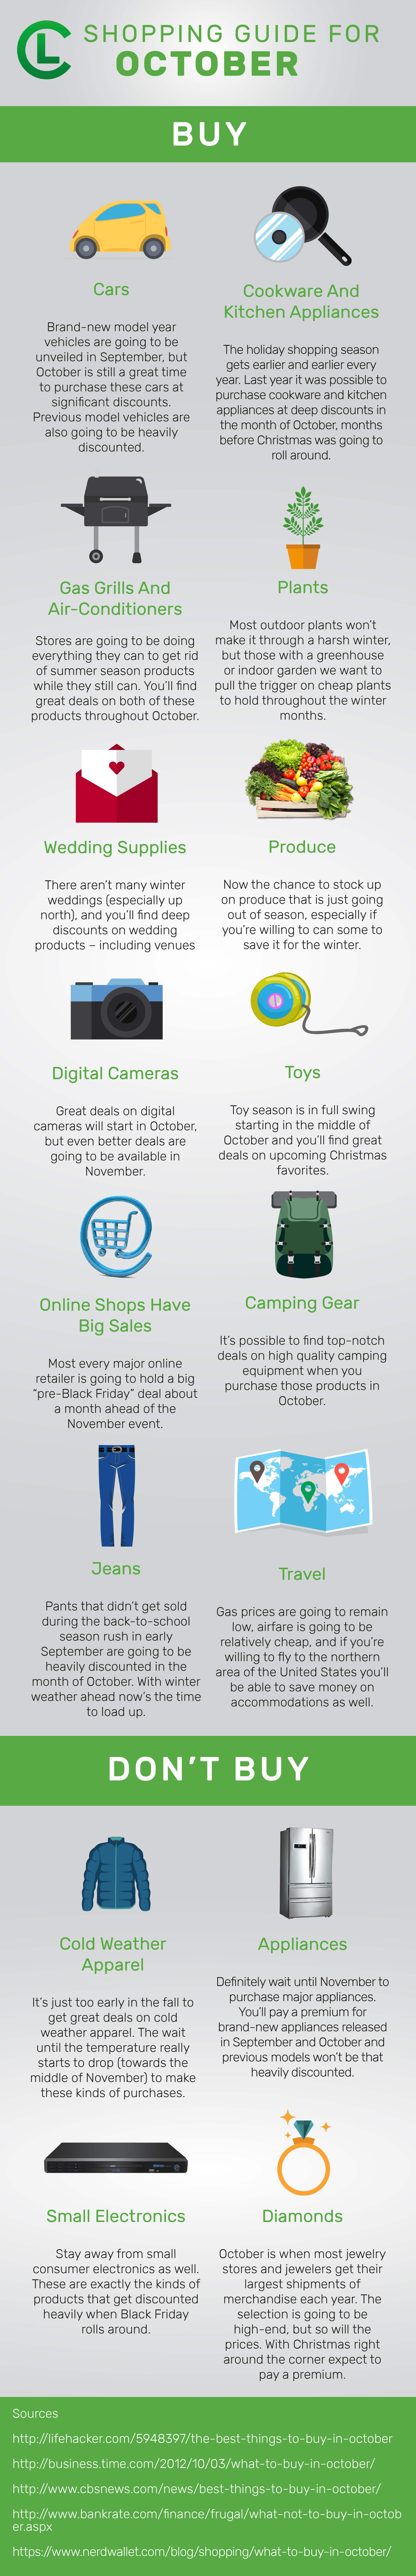 Shopping Guide For October Infographic